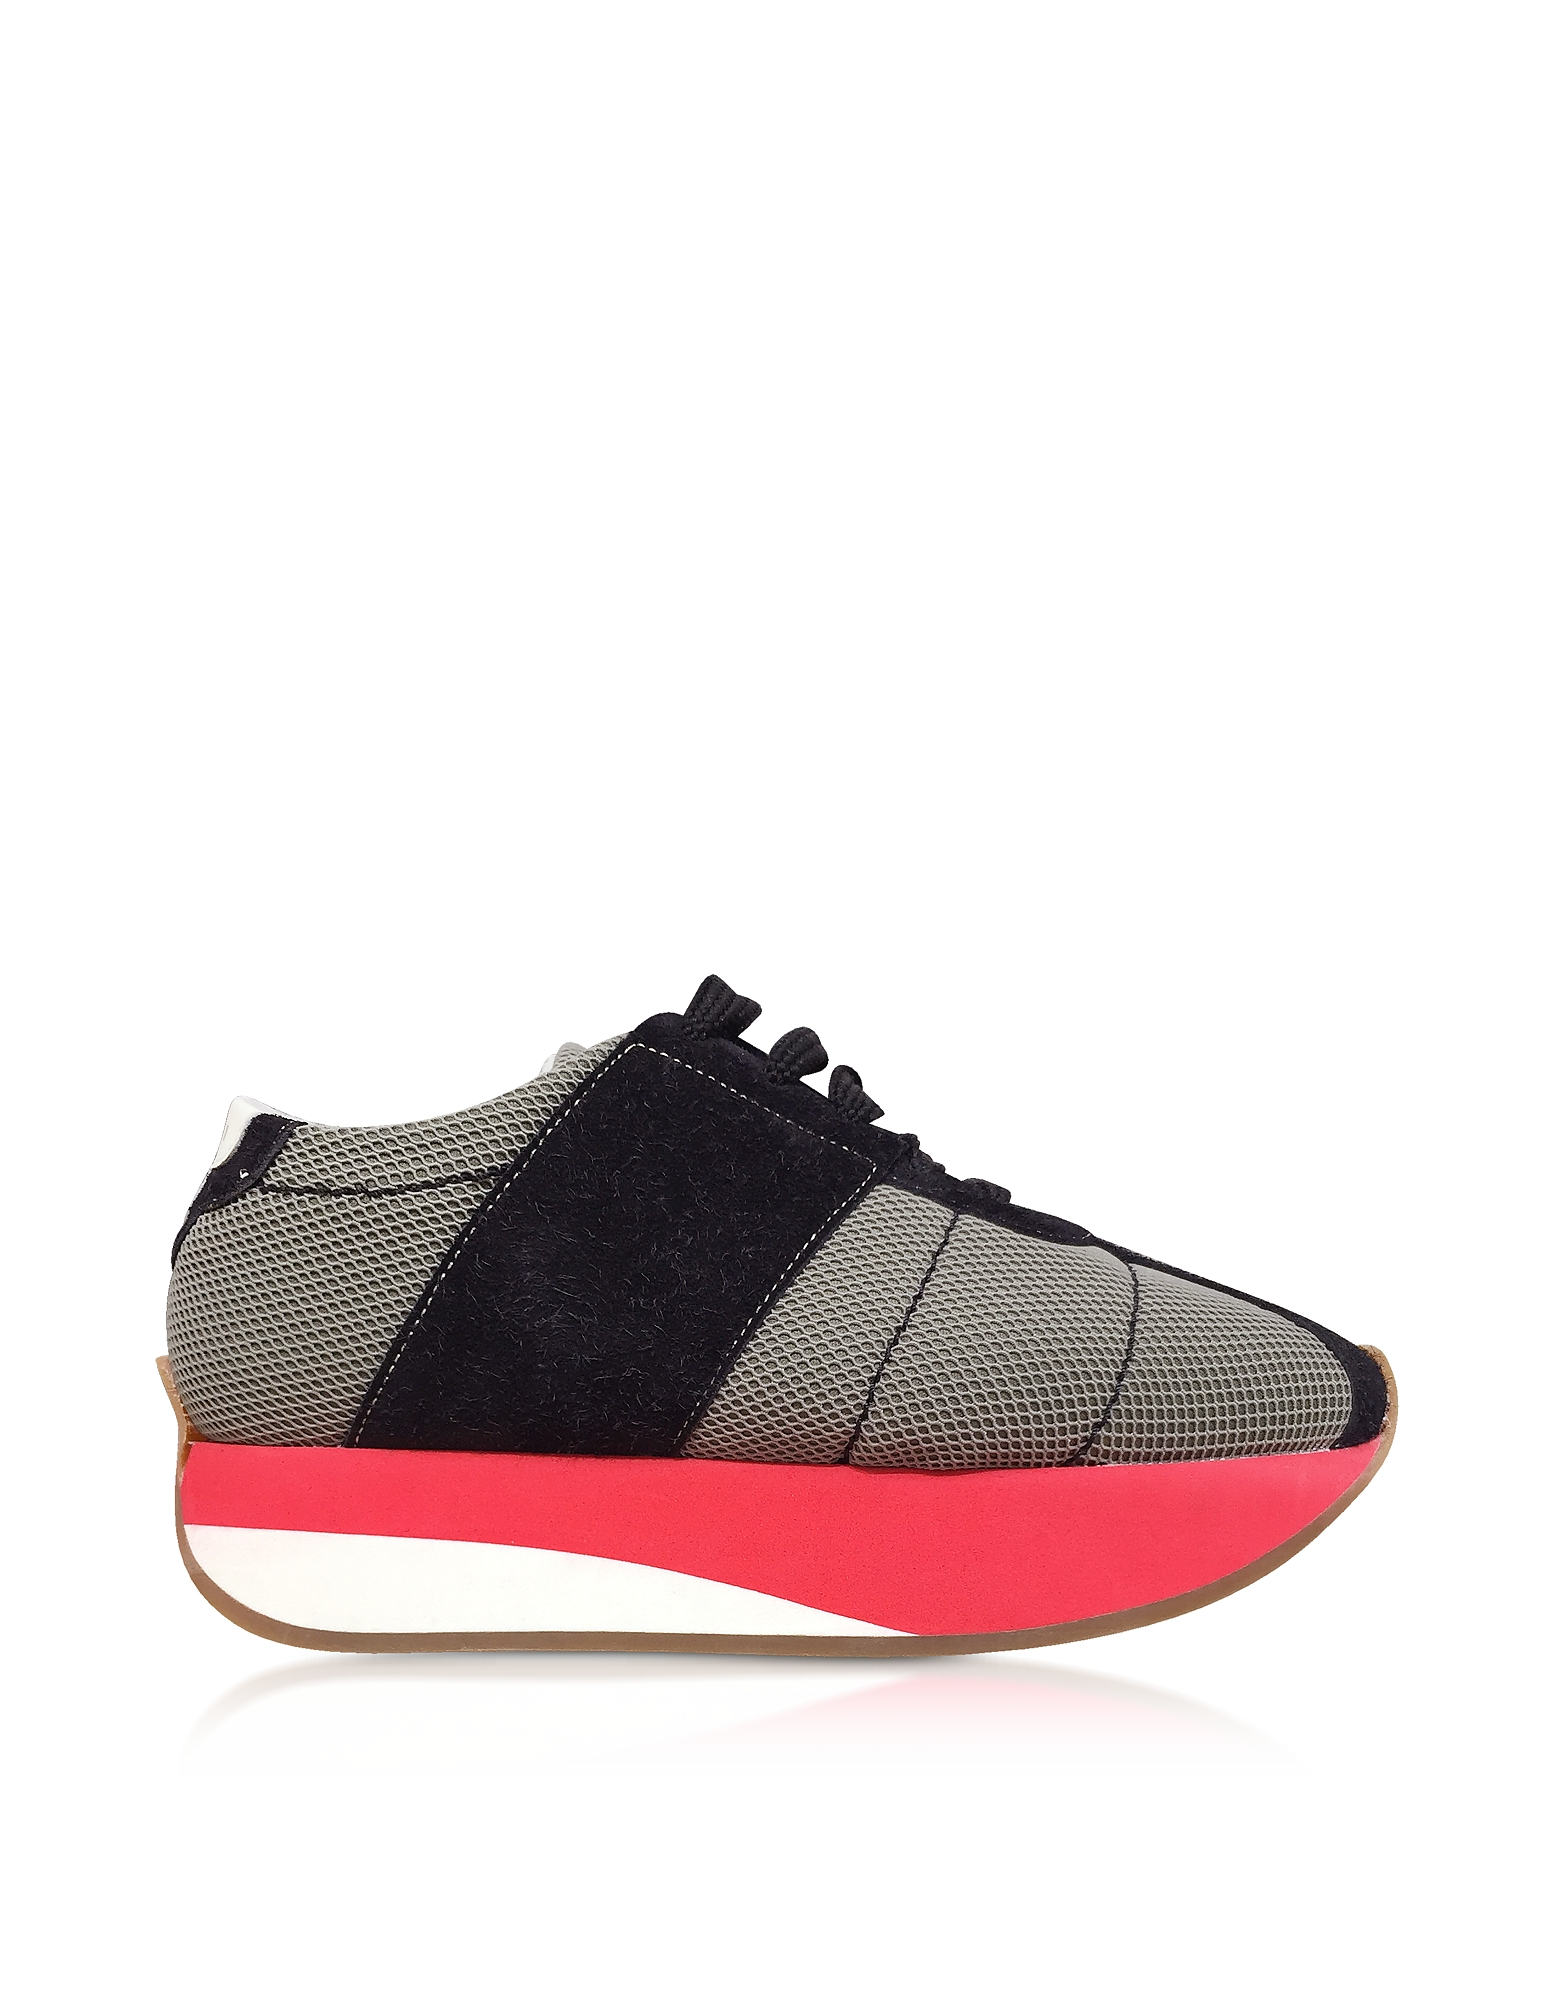 Marni Shoes, Grass and Black Tech Fabric Big Foot Sneakers